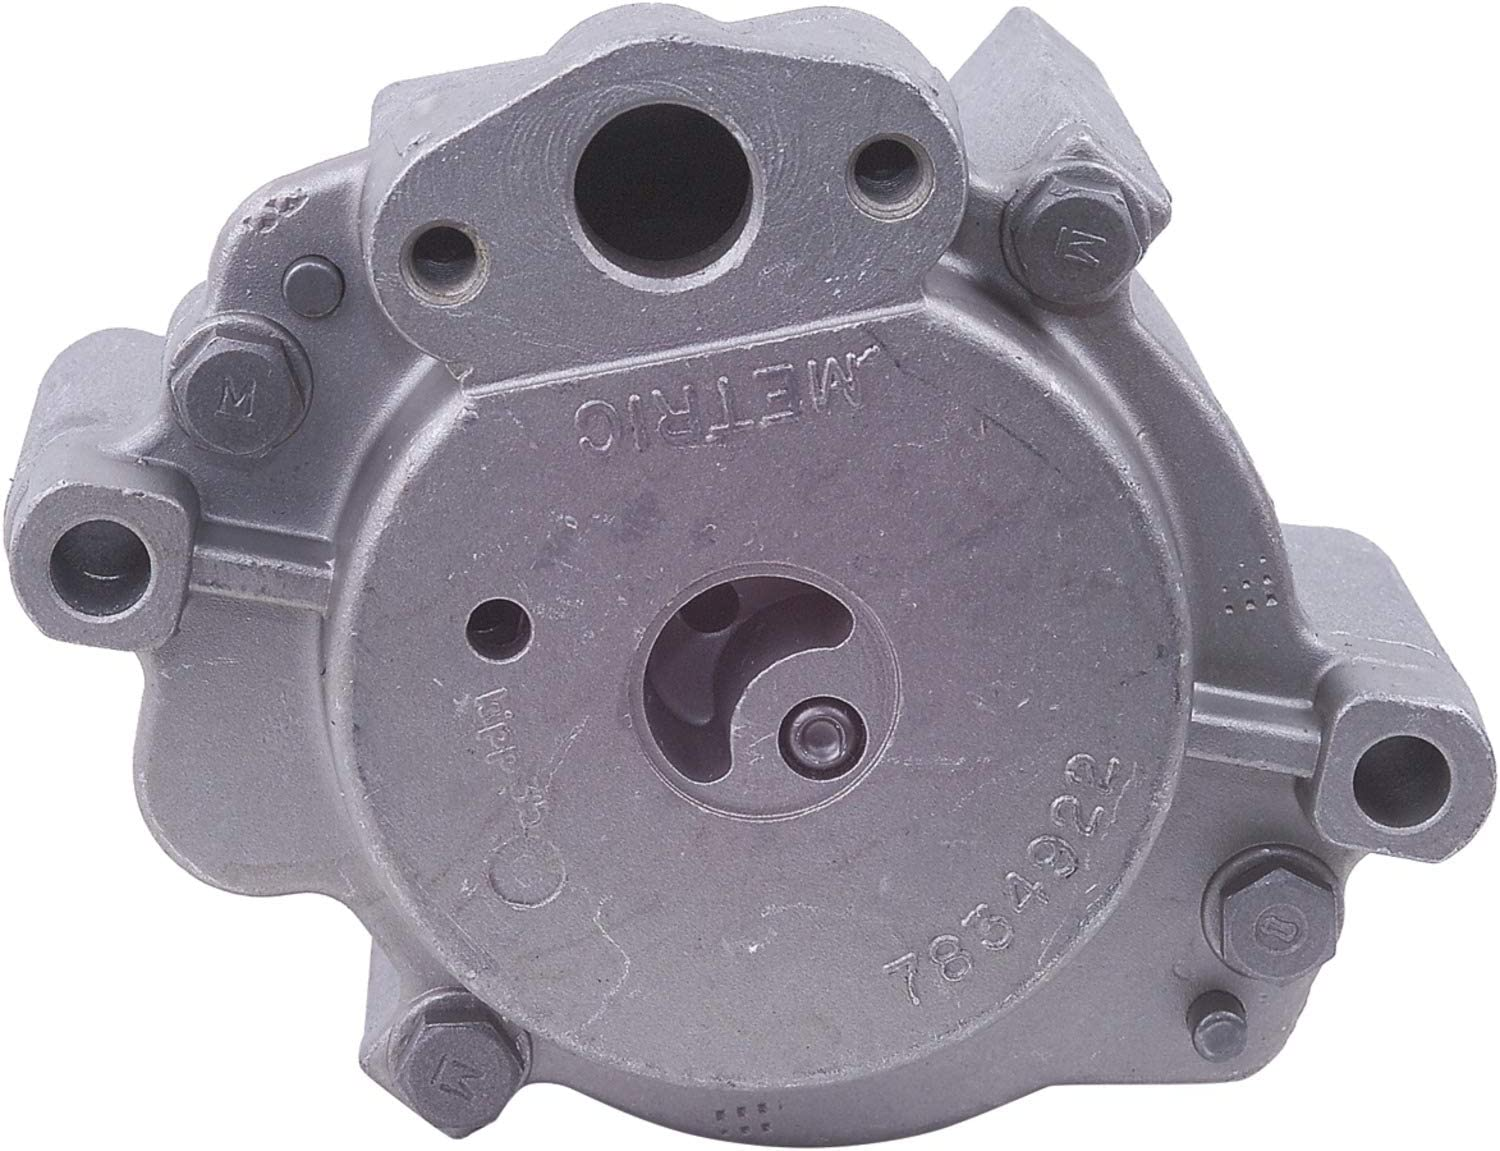 Cardone Max 82% OFF 32-436 excellence Remanufactured Air Smog Pump